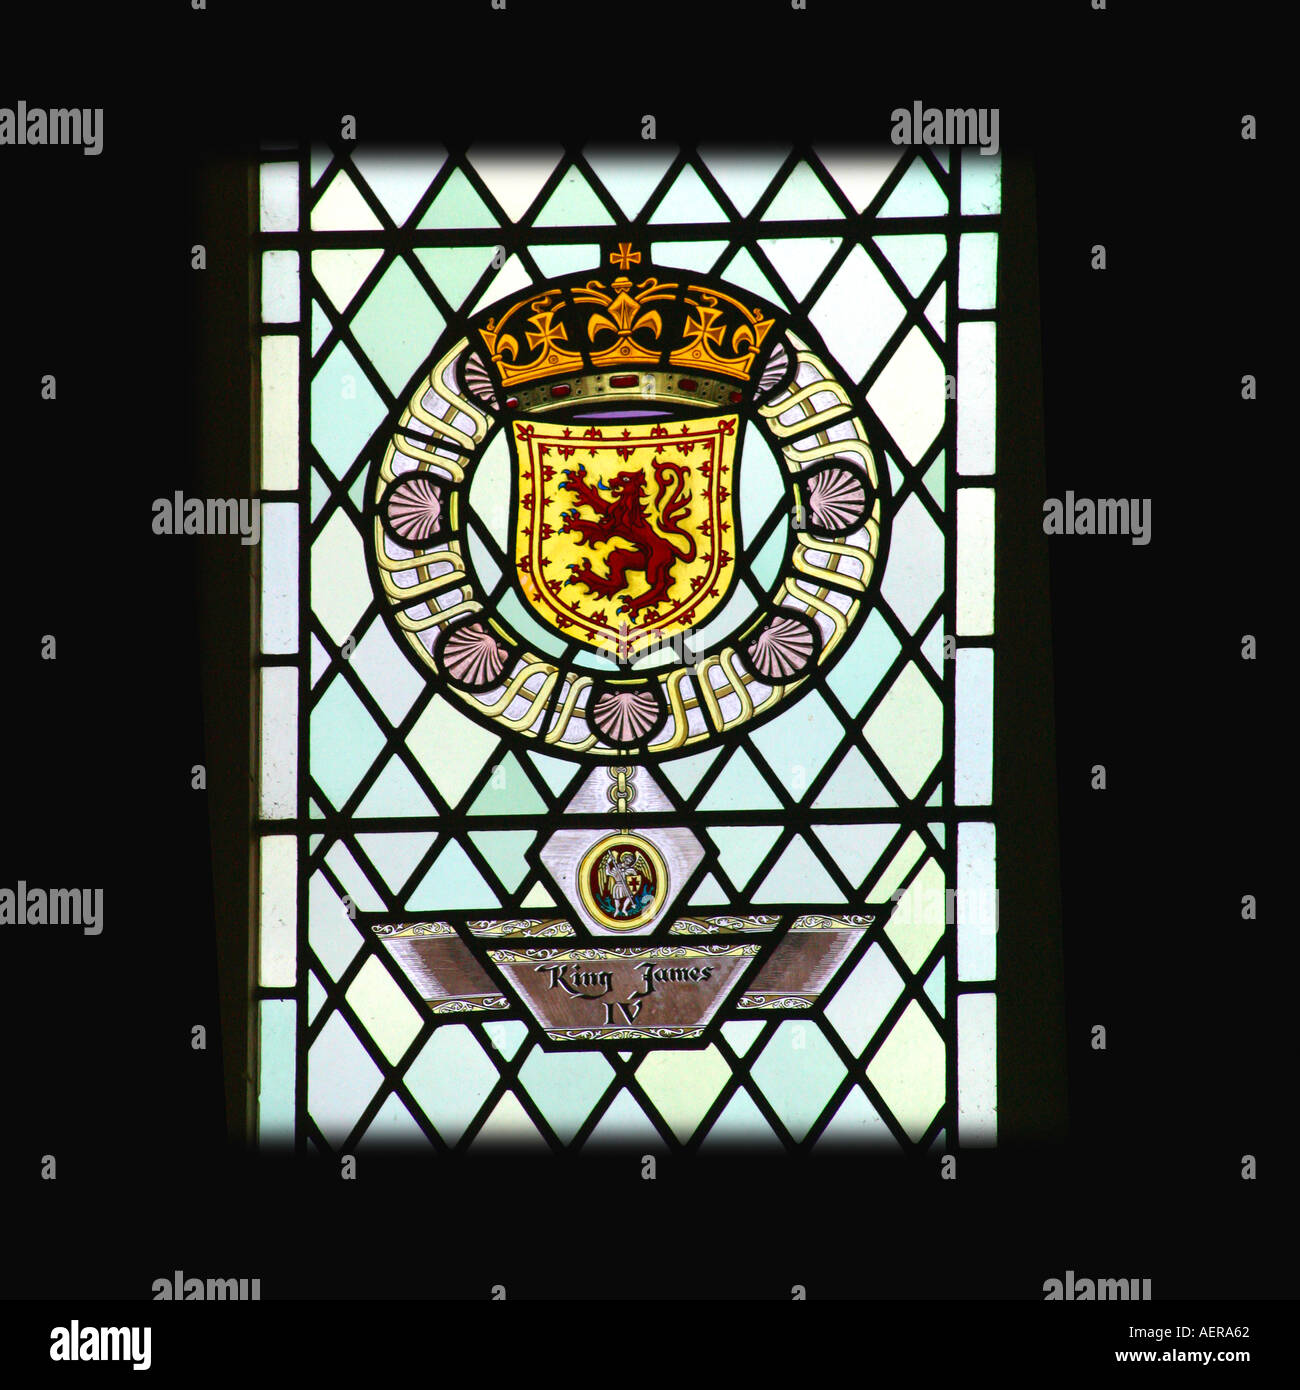 Stirling Castle Scotland King James IV coat of arms in great hall - Stock Image